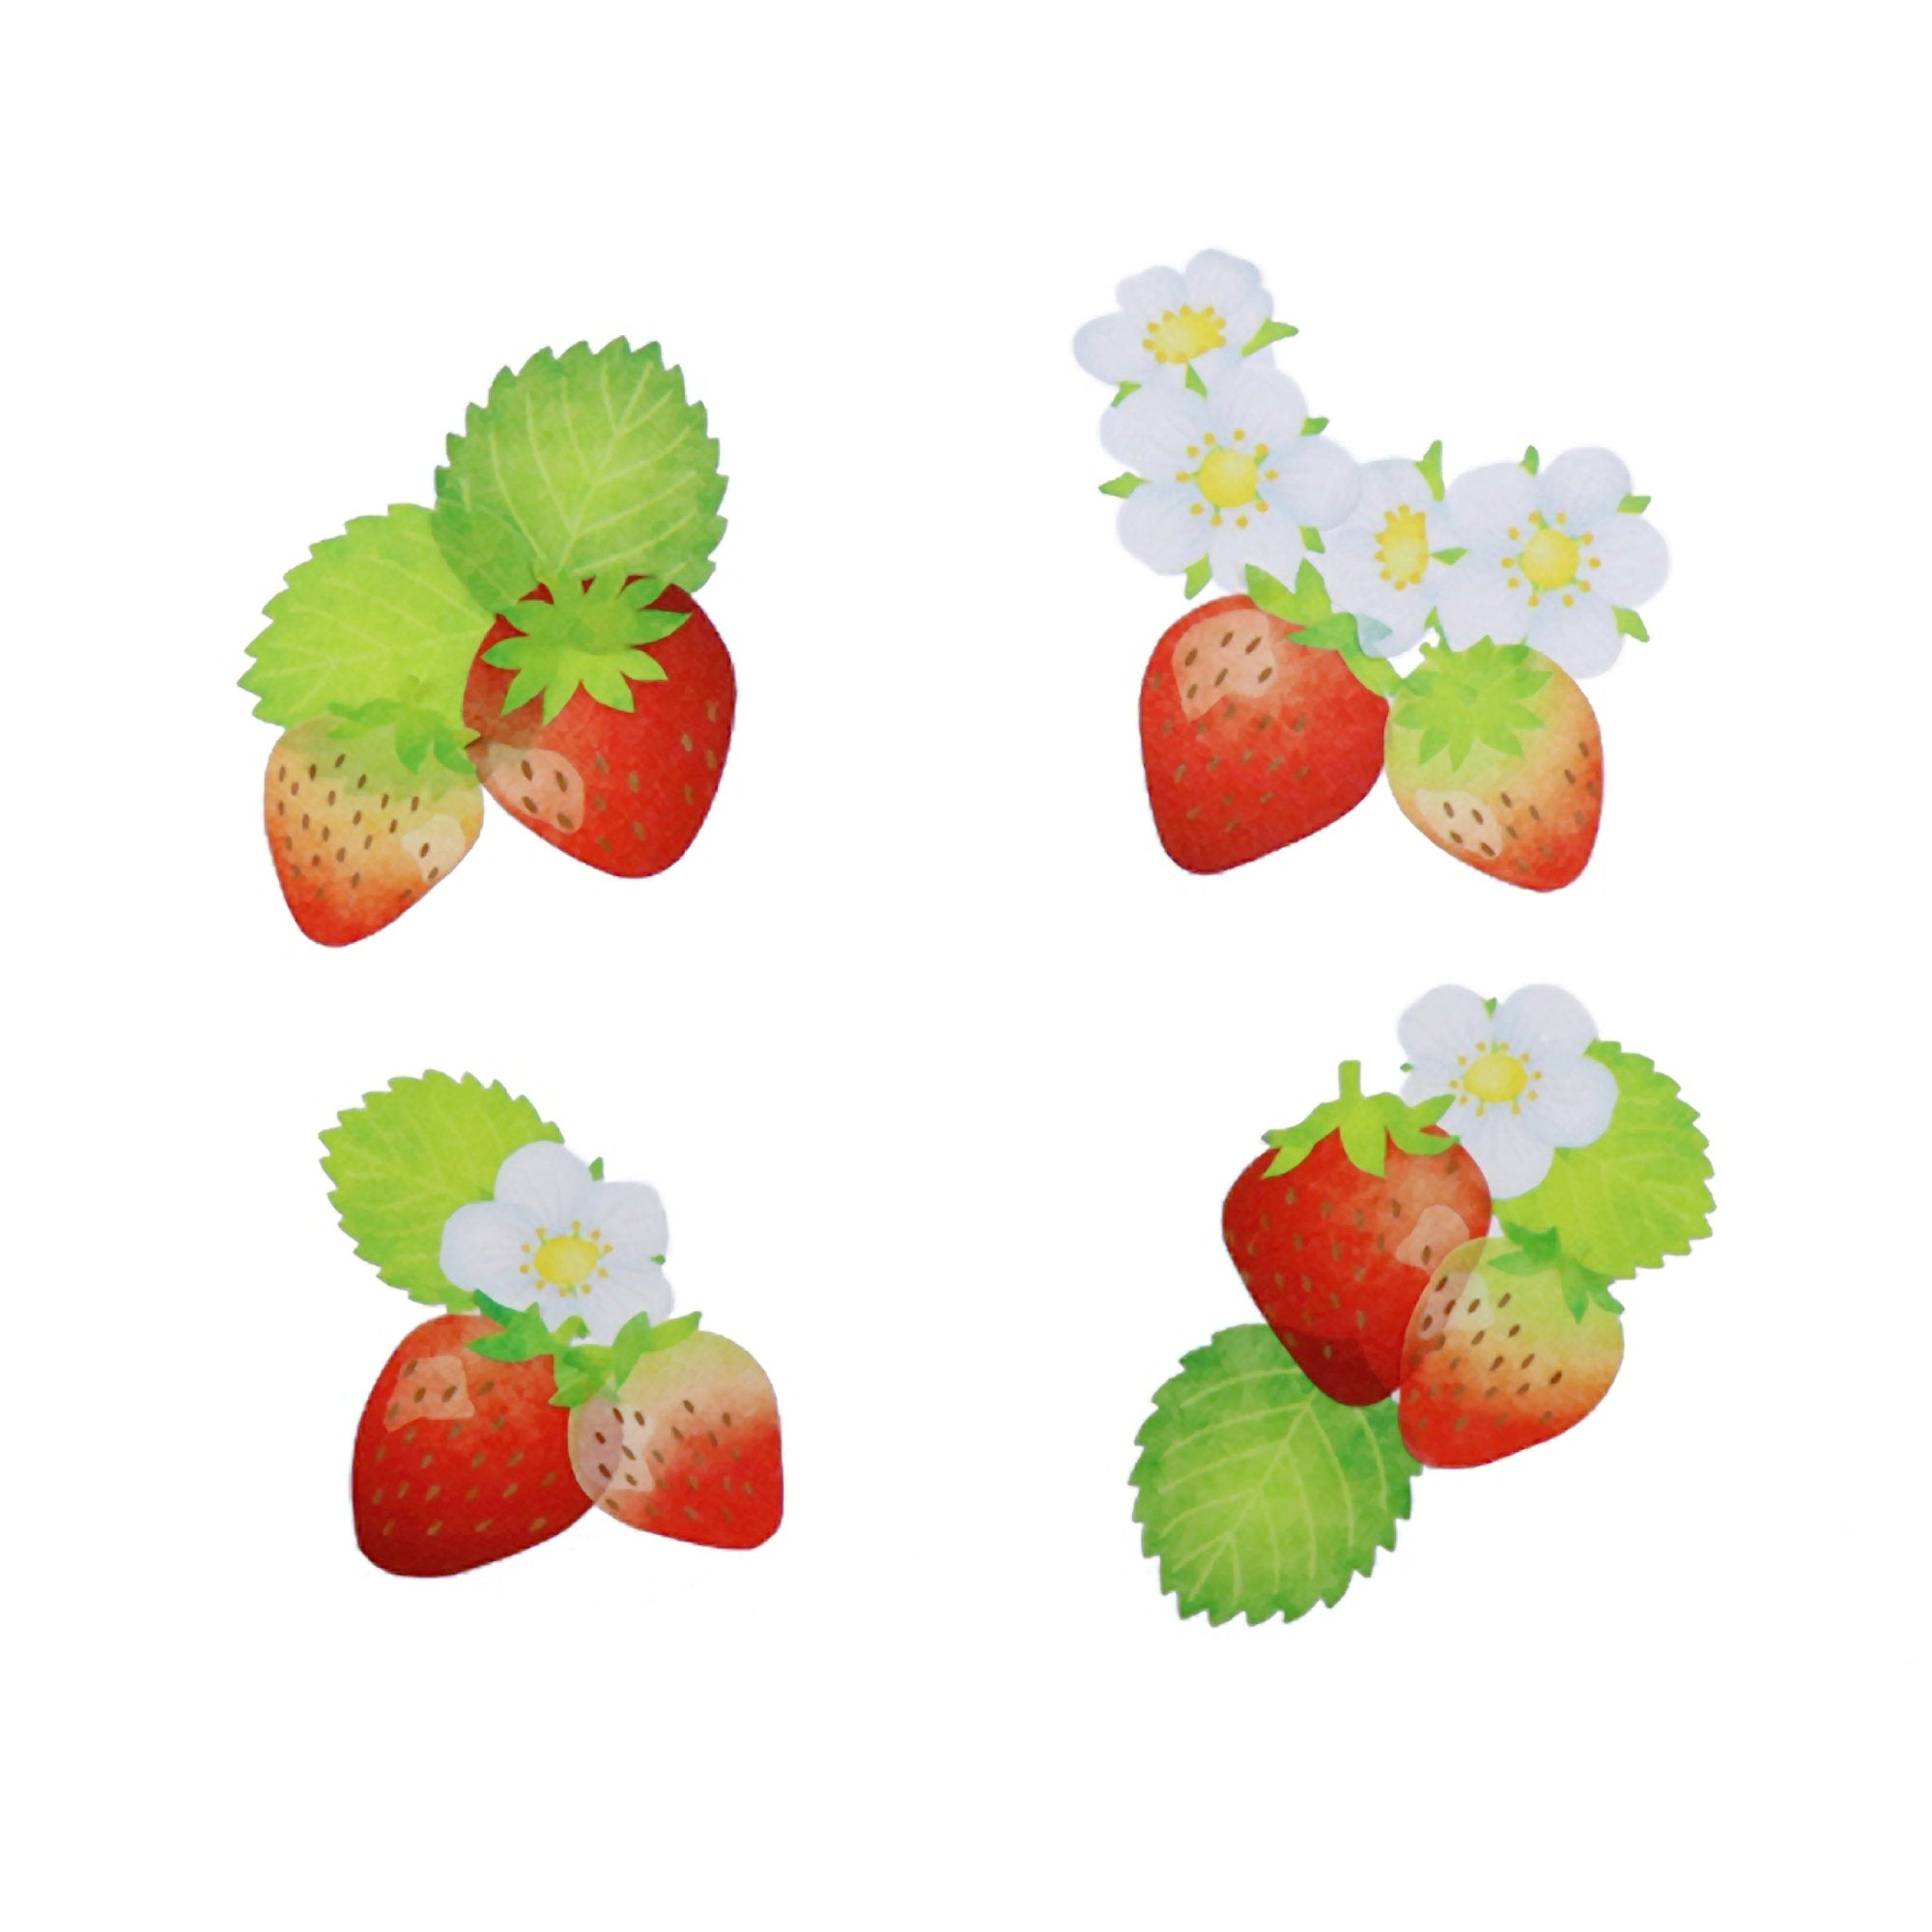 STRAWBERRY Strawberries | Bande Washi Tape Masking Tape Sticker Roll BDA283 200 Stickers - The Stationery Life!